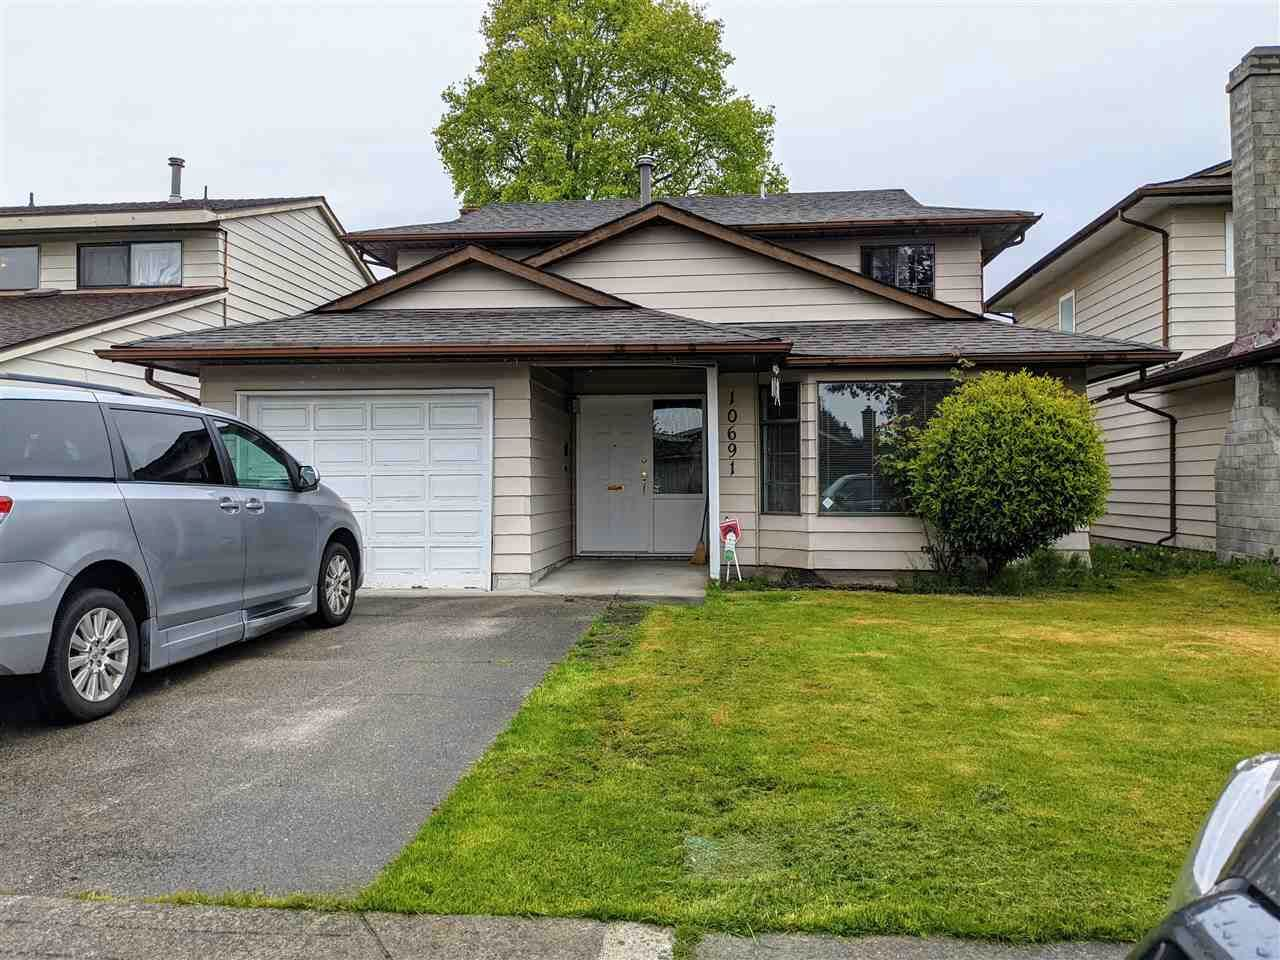 Main Photo: 10691 CANSO CRESCENT in Richmond: Steveston North House for sale : MLS®# R2575057